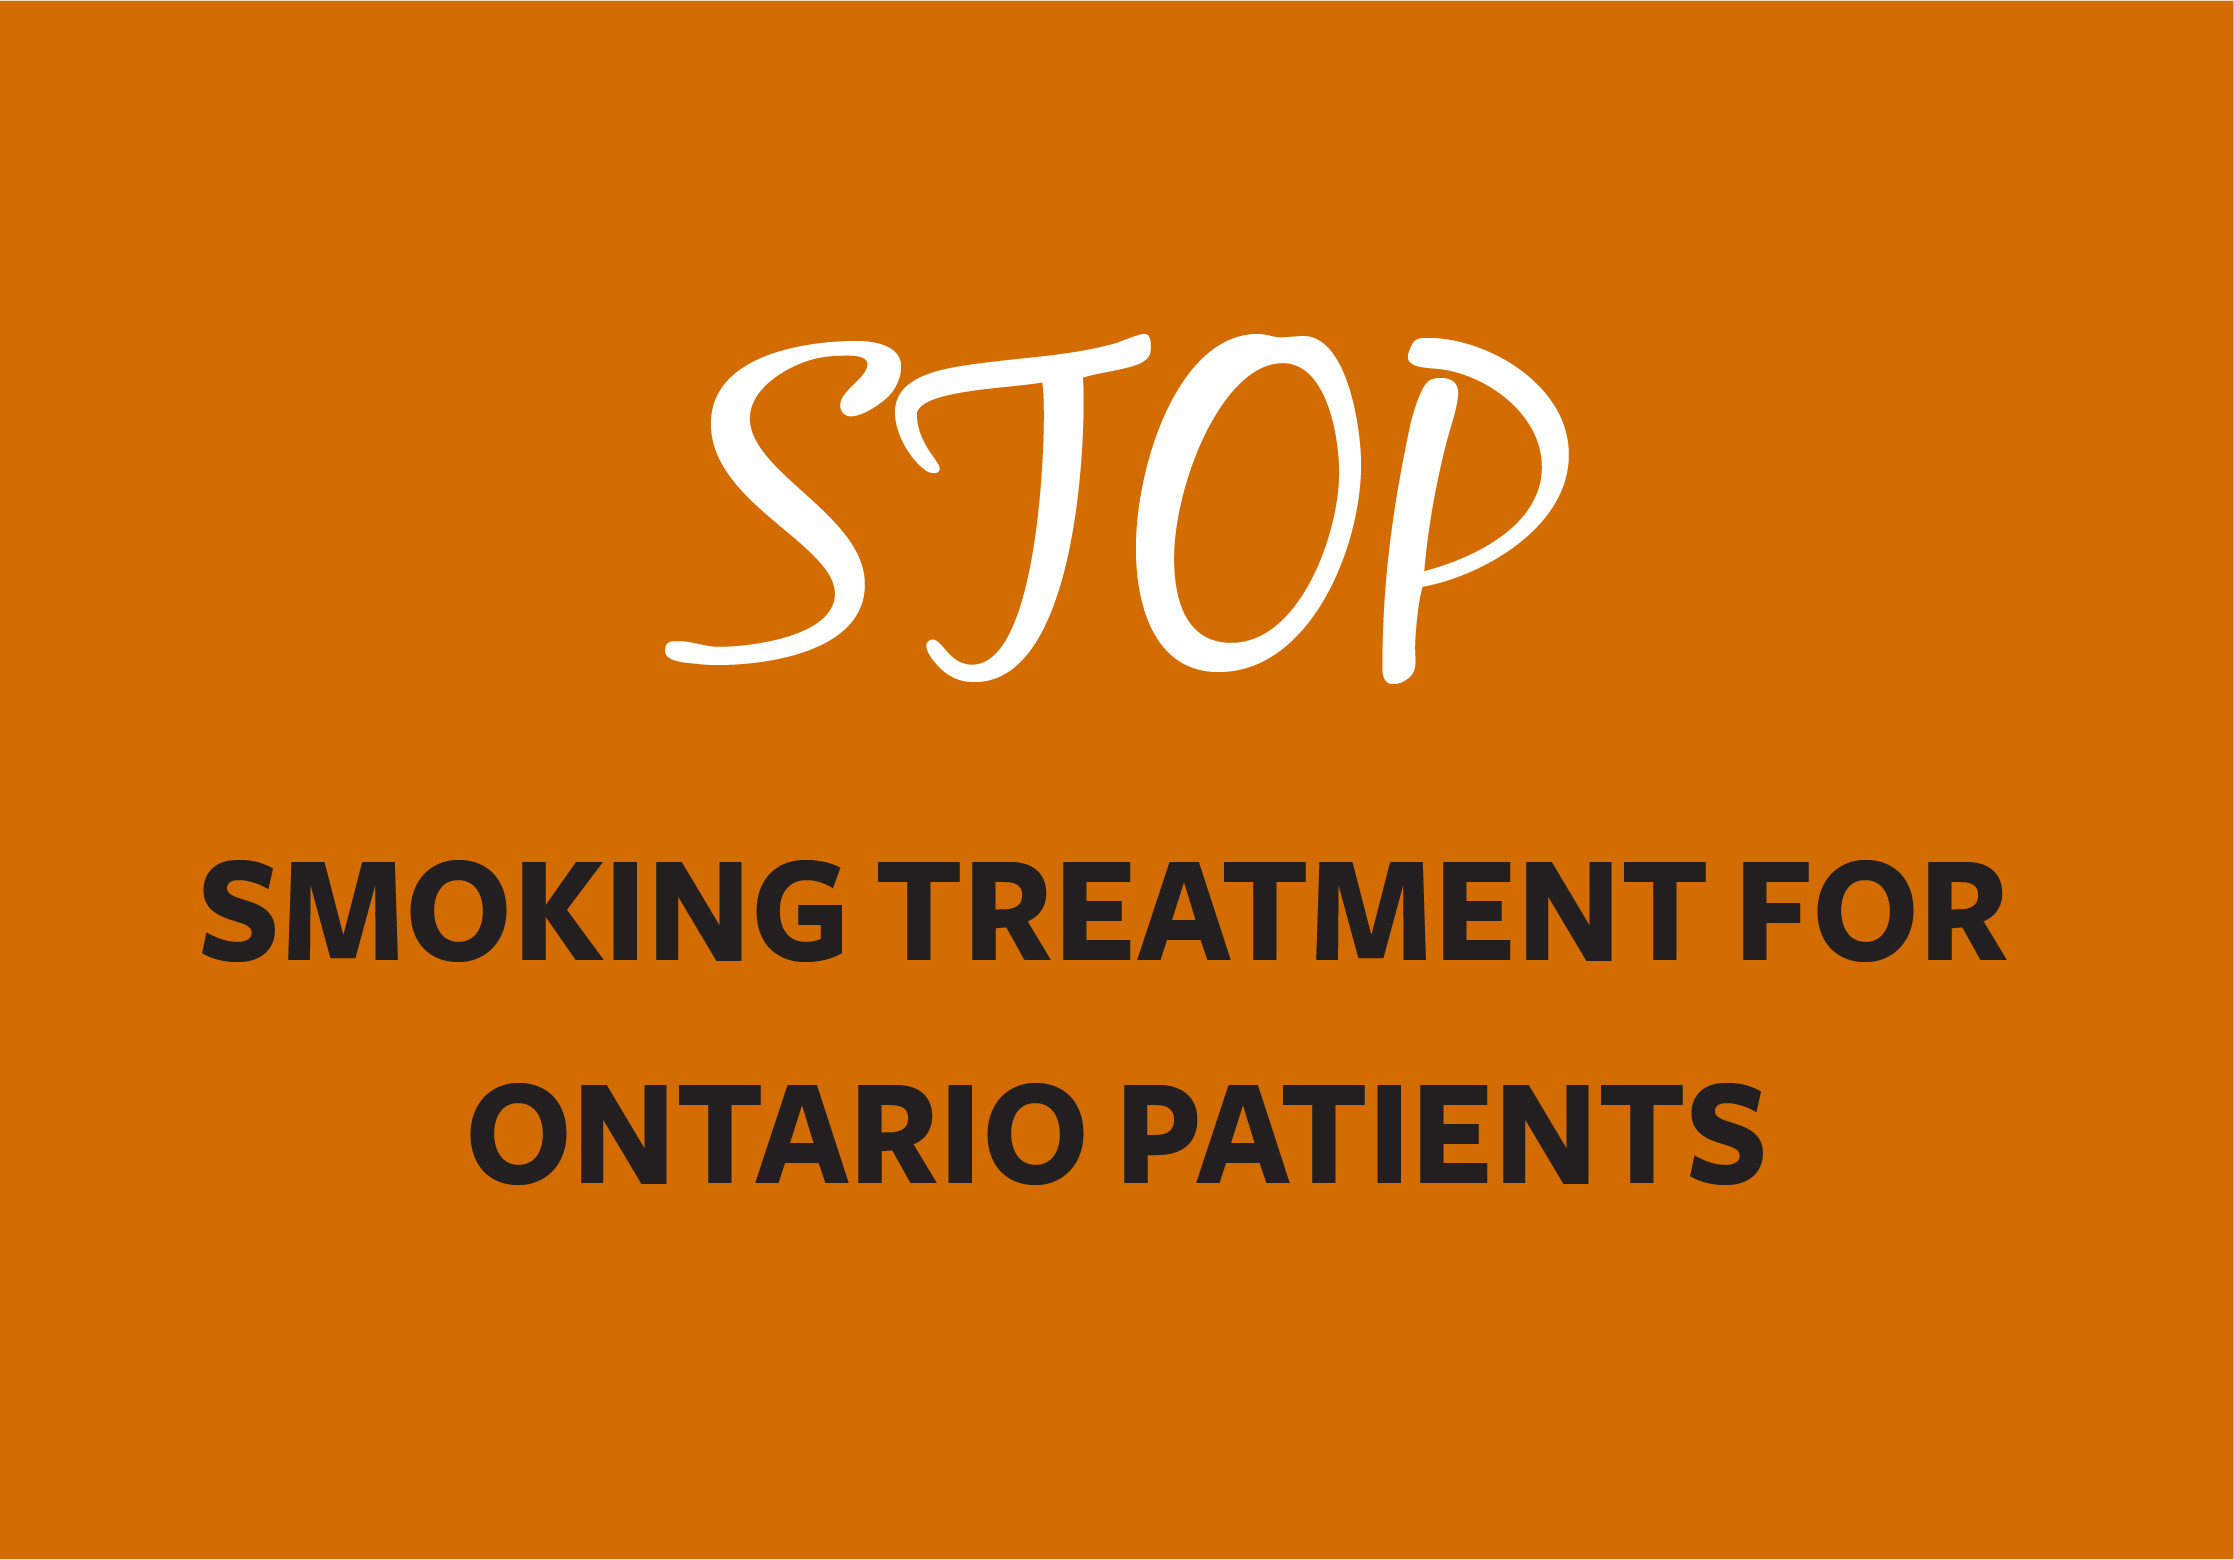 Link to Smoking Treatment for Ontario Patients program page